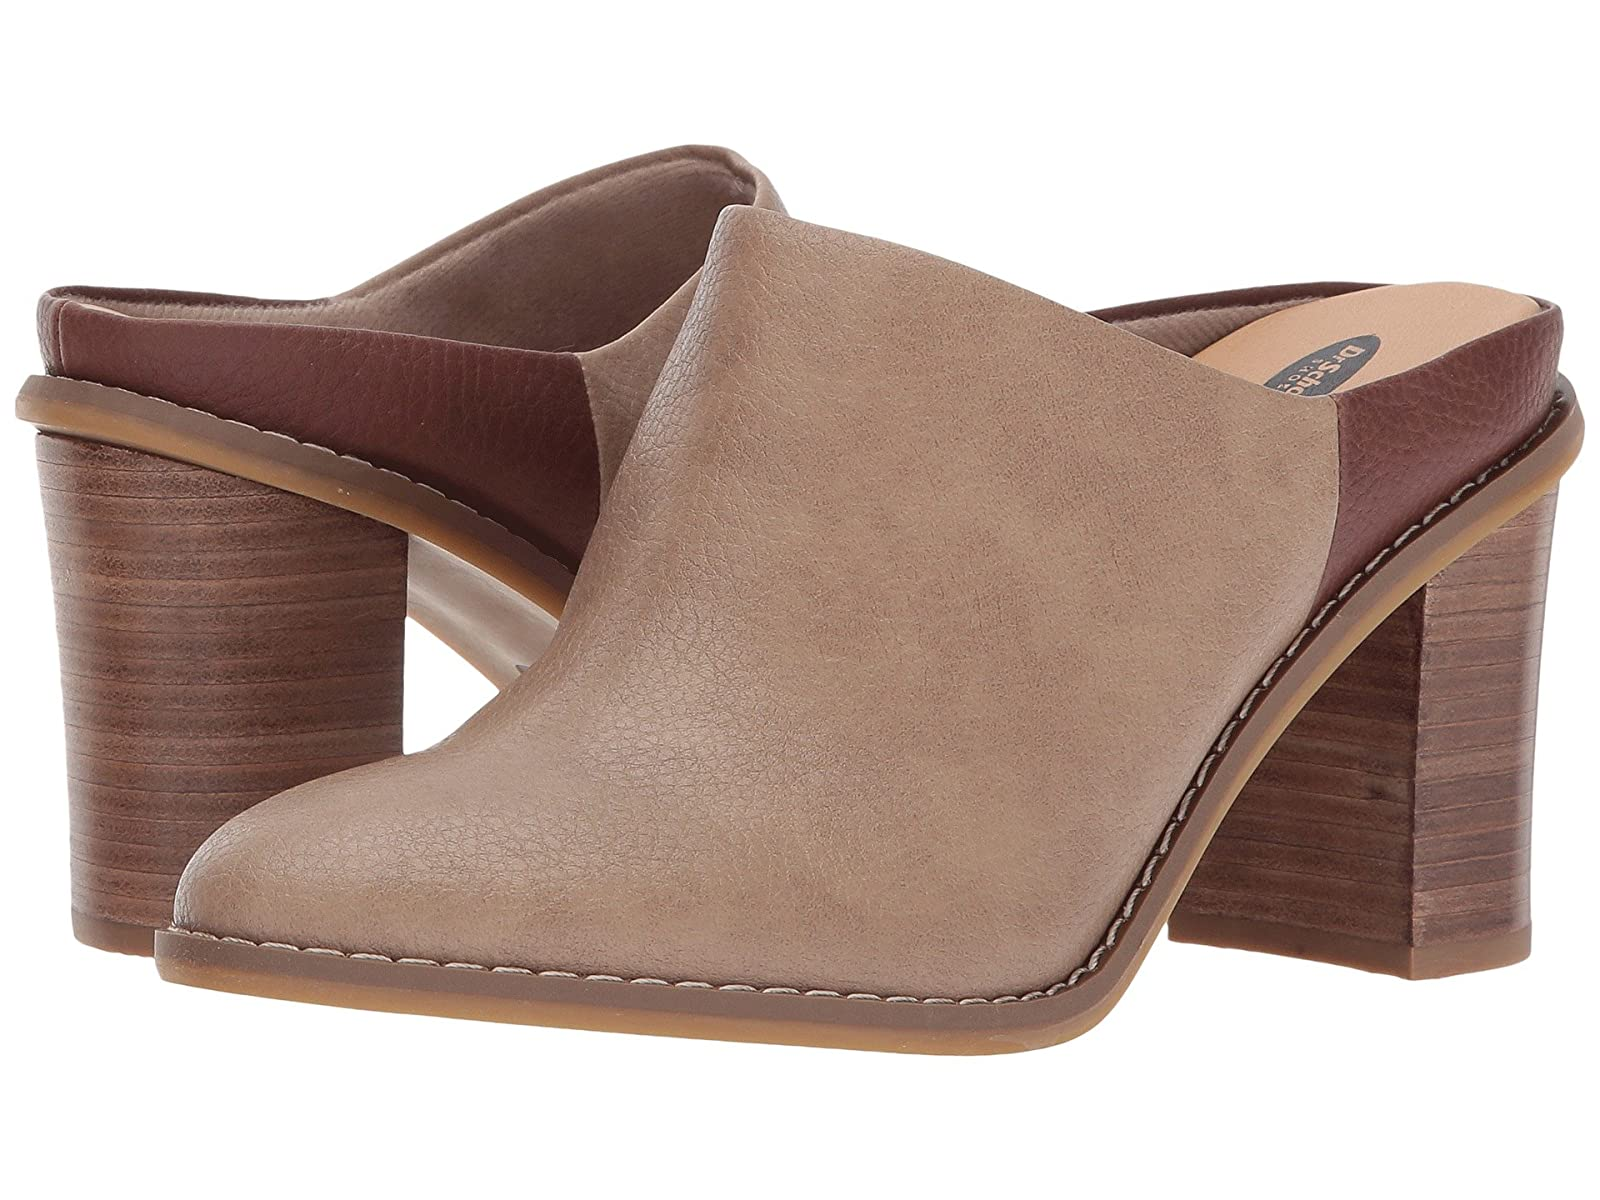 Dr. Scholl's VikingCheap and distinctive eye-catching shoes